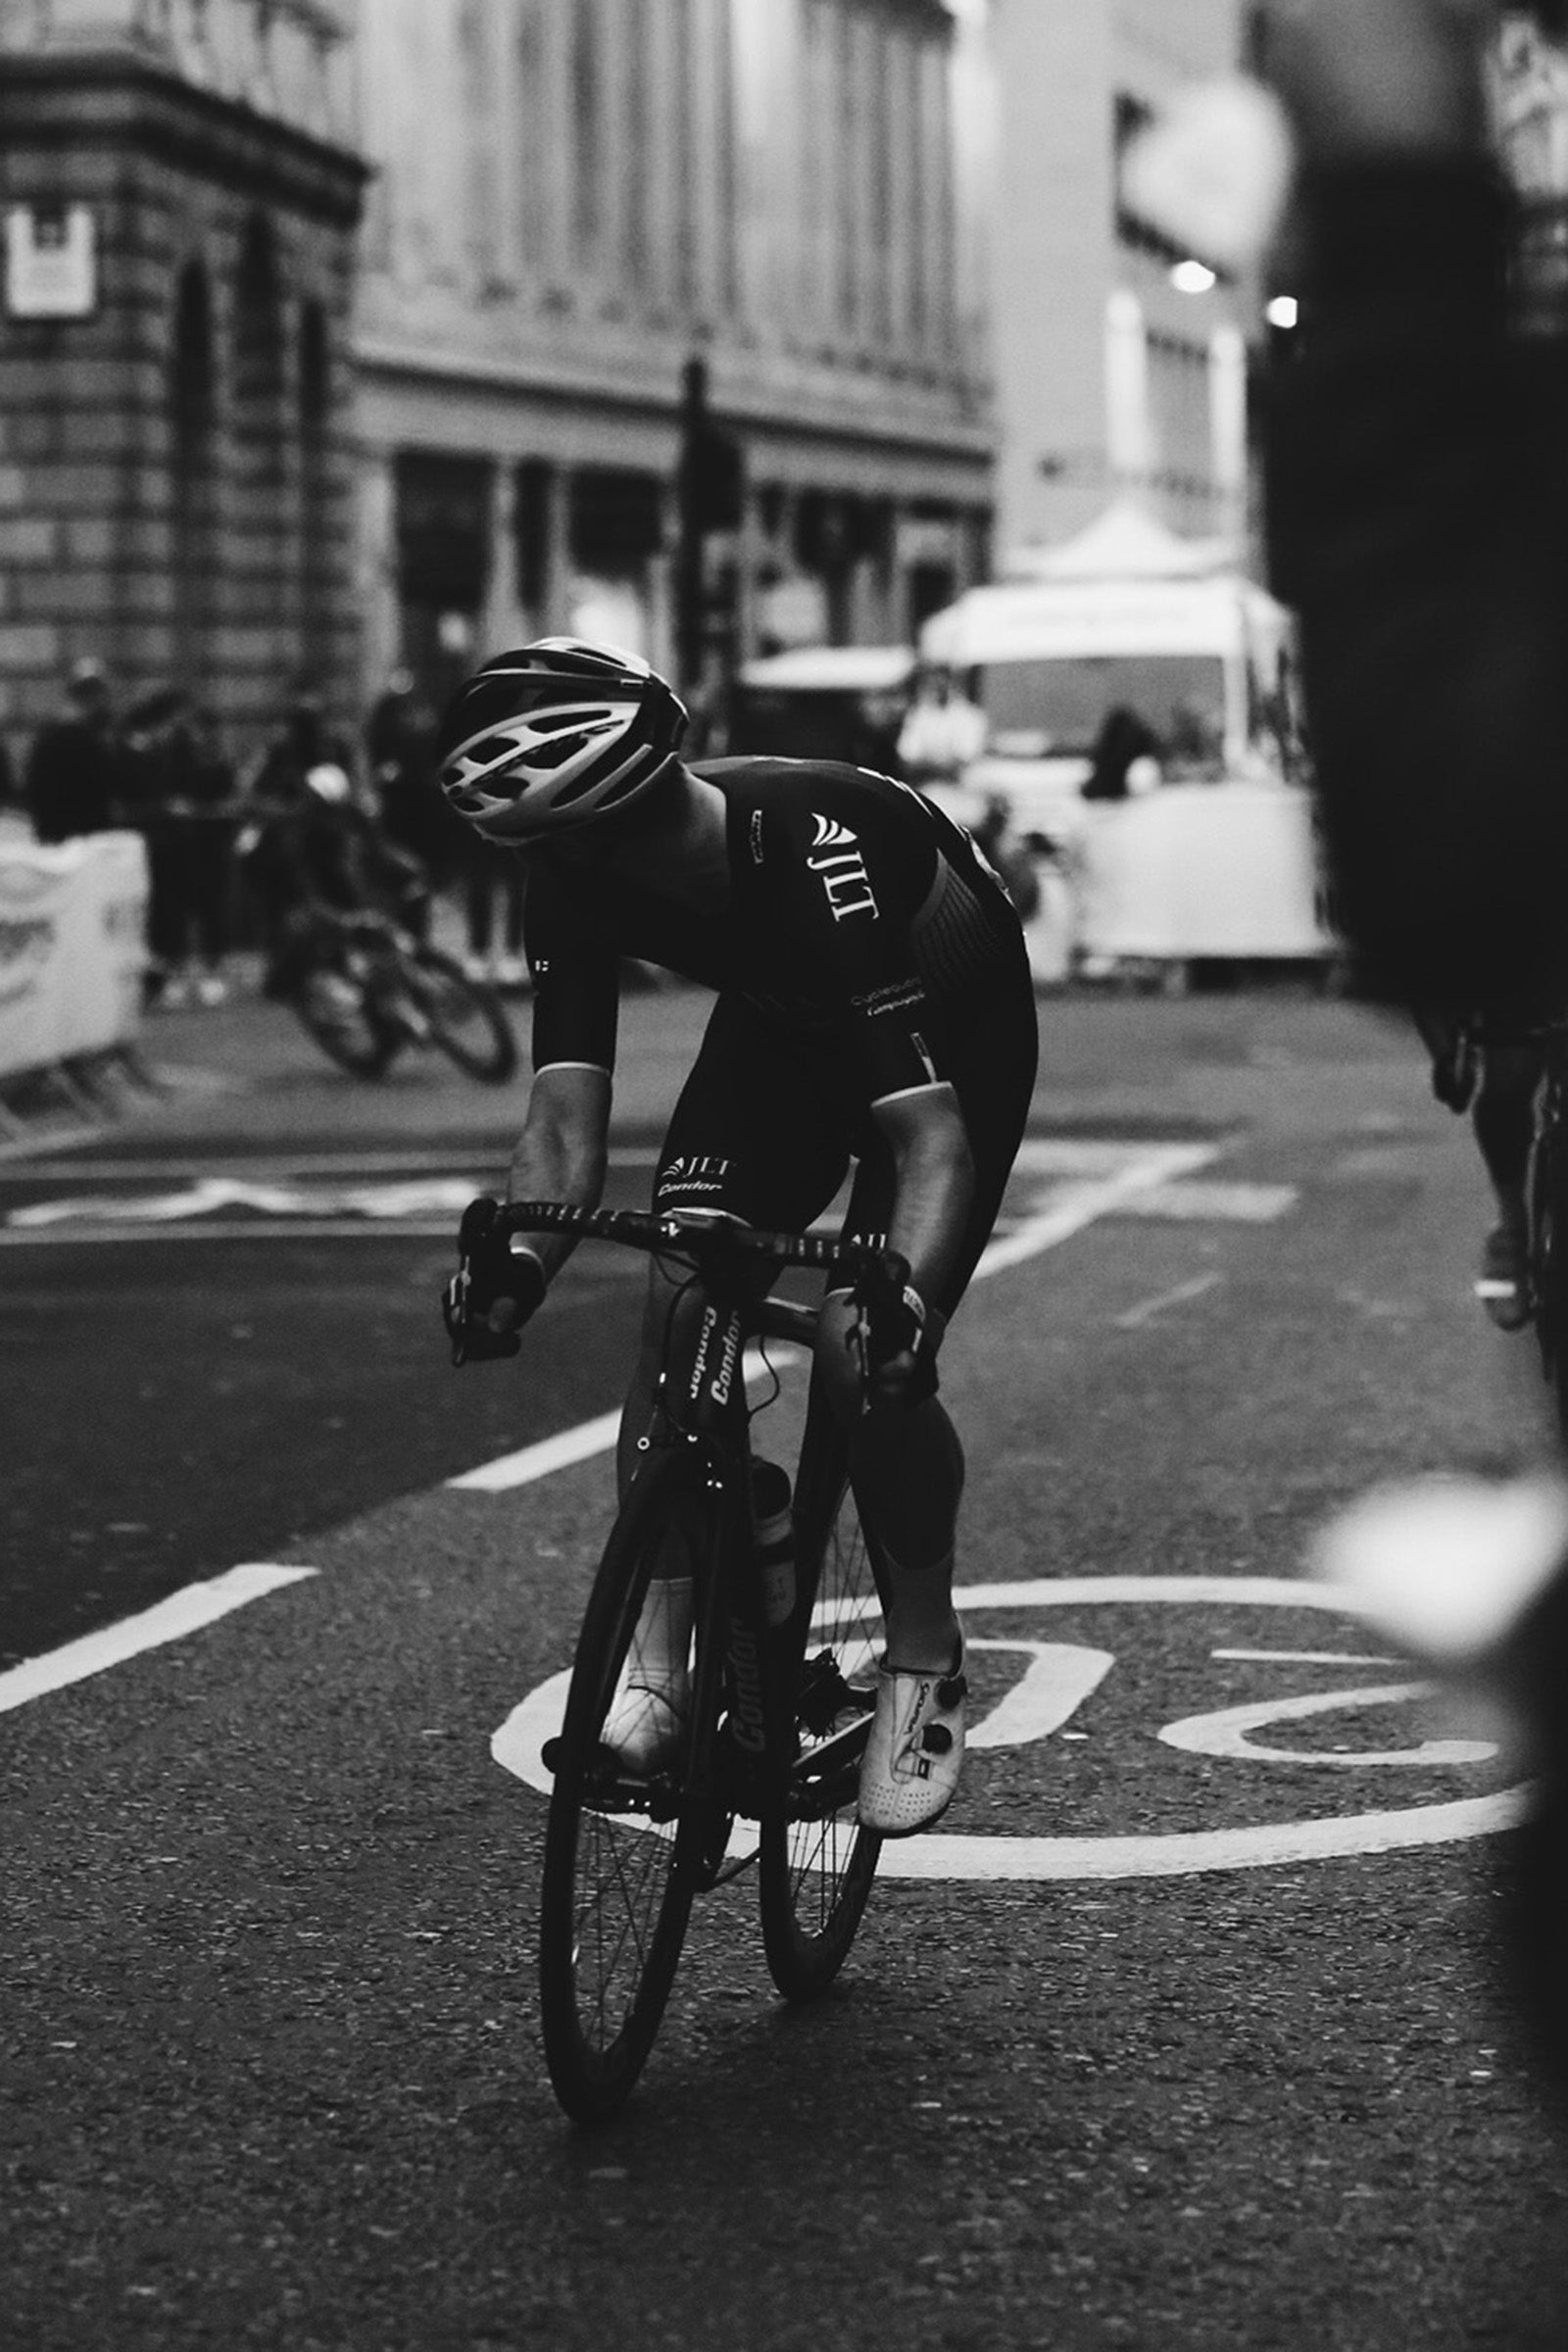 Chris Lawless at the 2016 Nocturne racing for JLT Condor